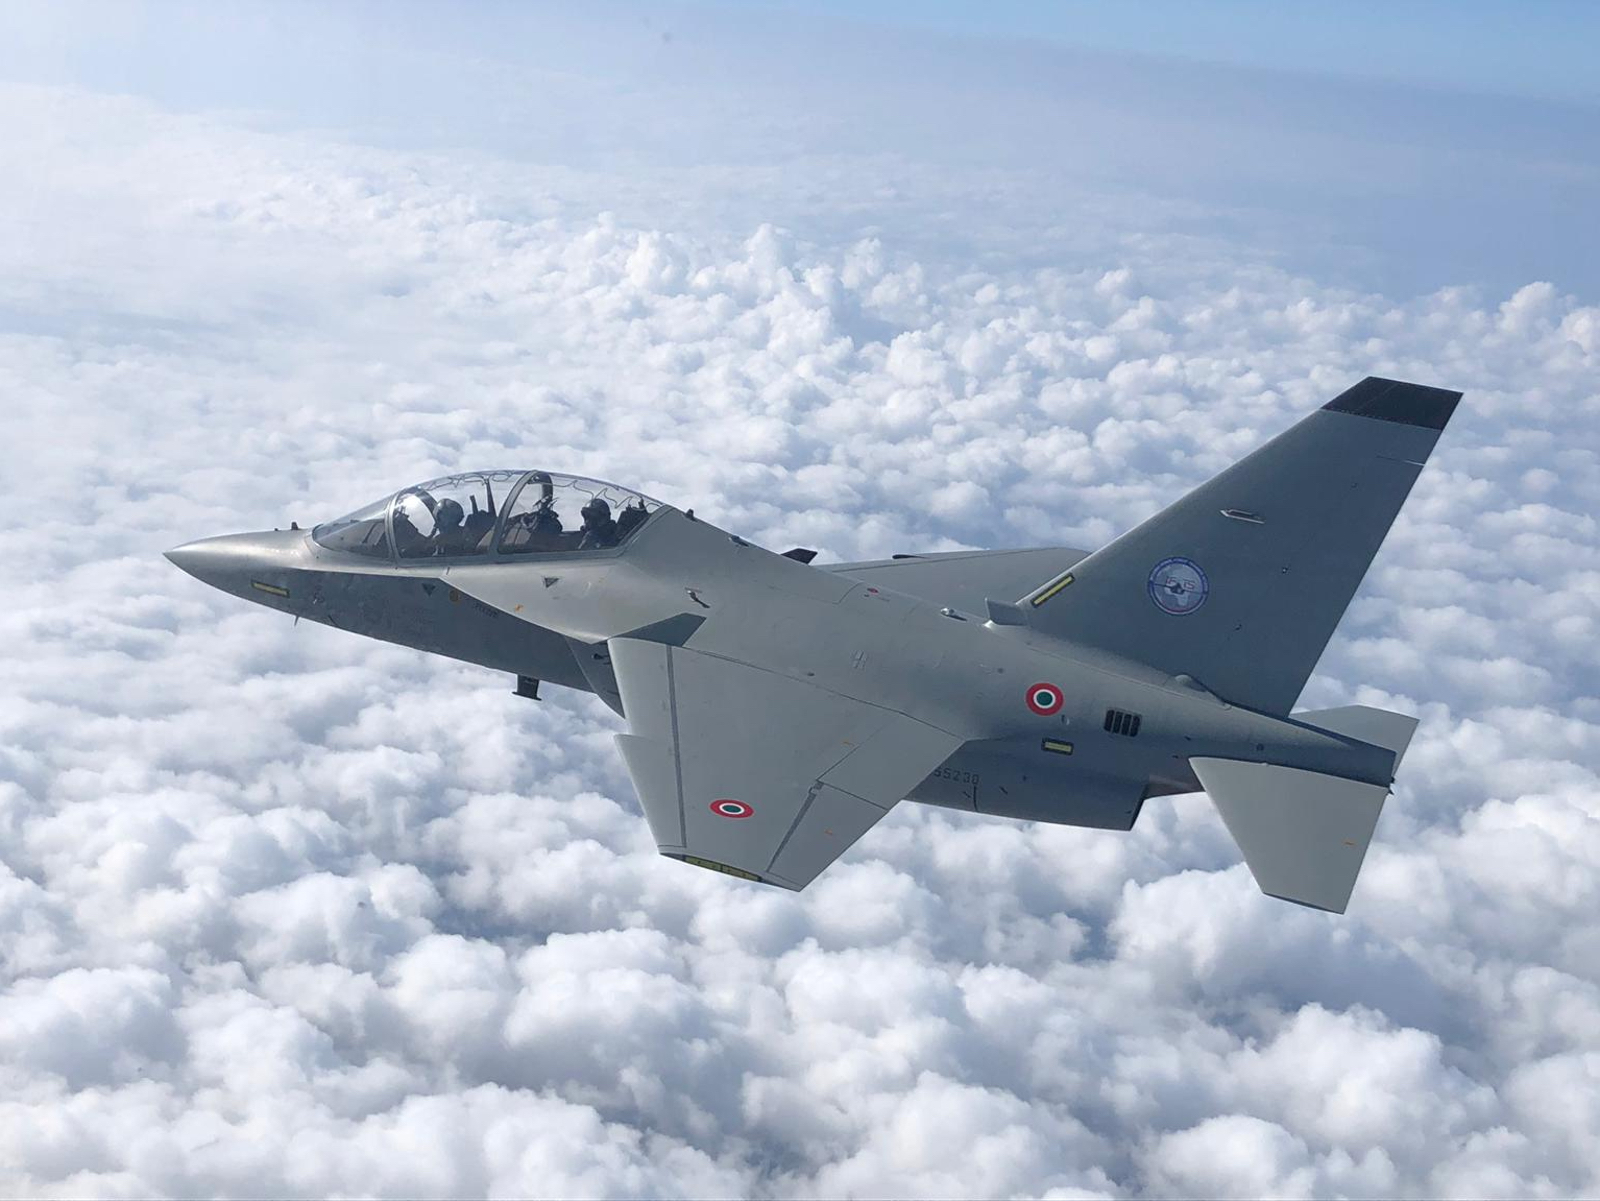 International Flight Training School: German Pilots Choose to be Trained in Italy with the Italian Air Force and Leonardo